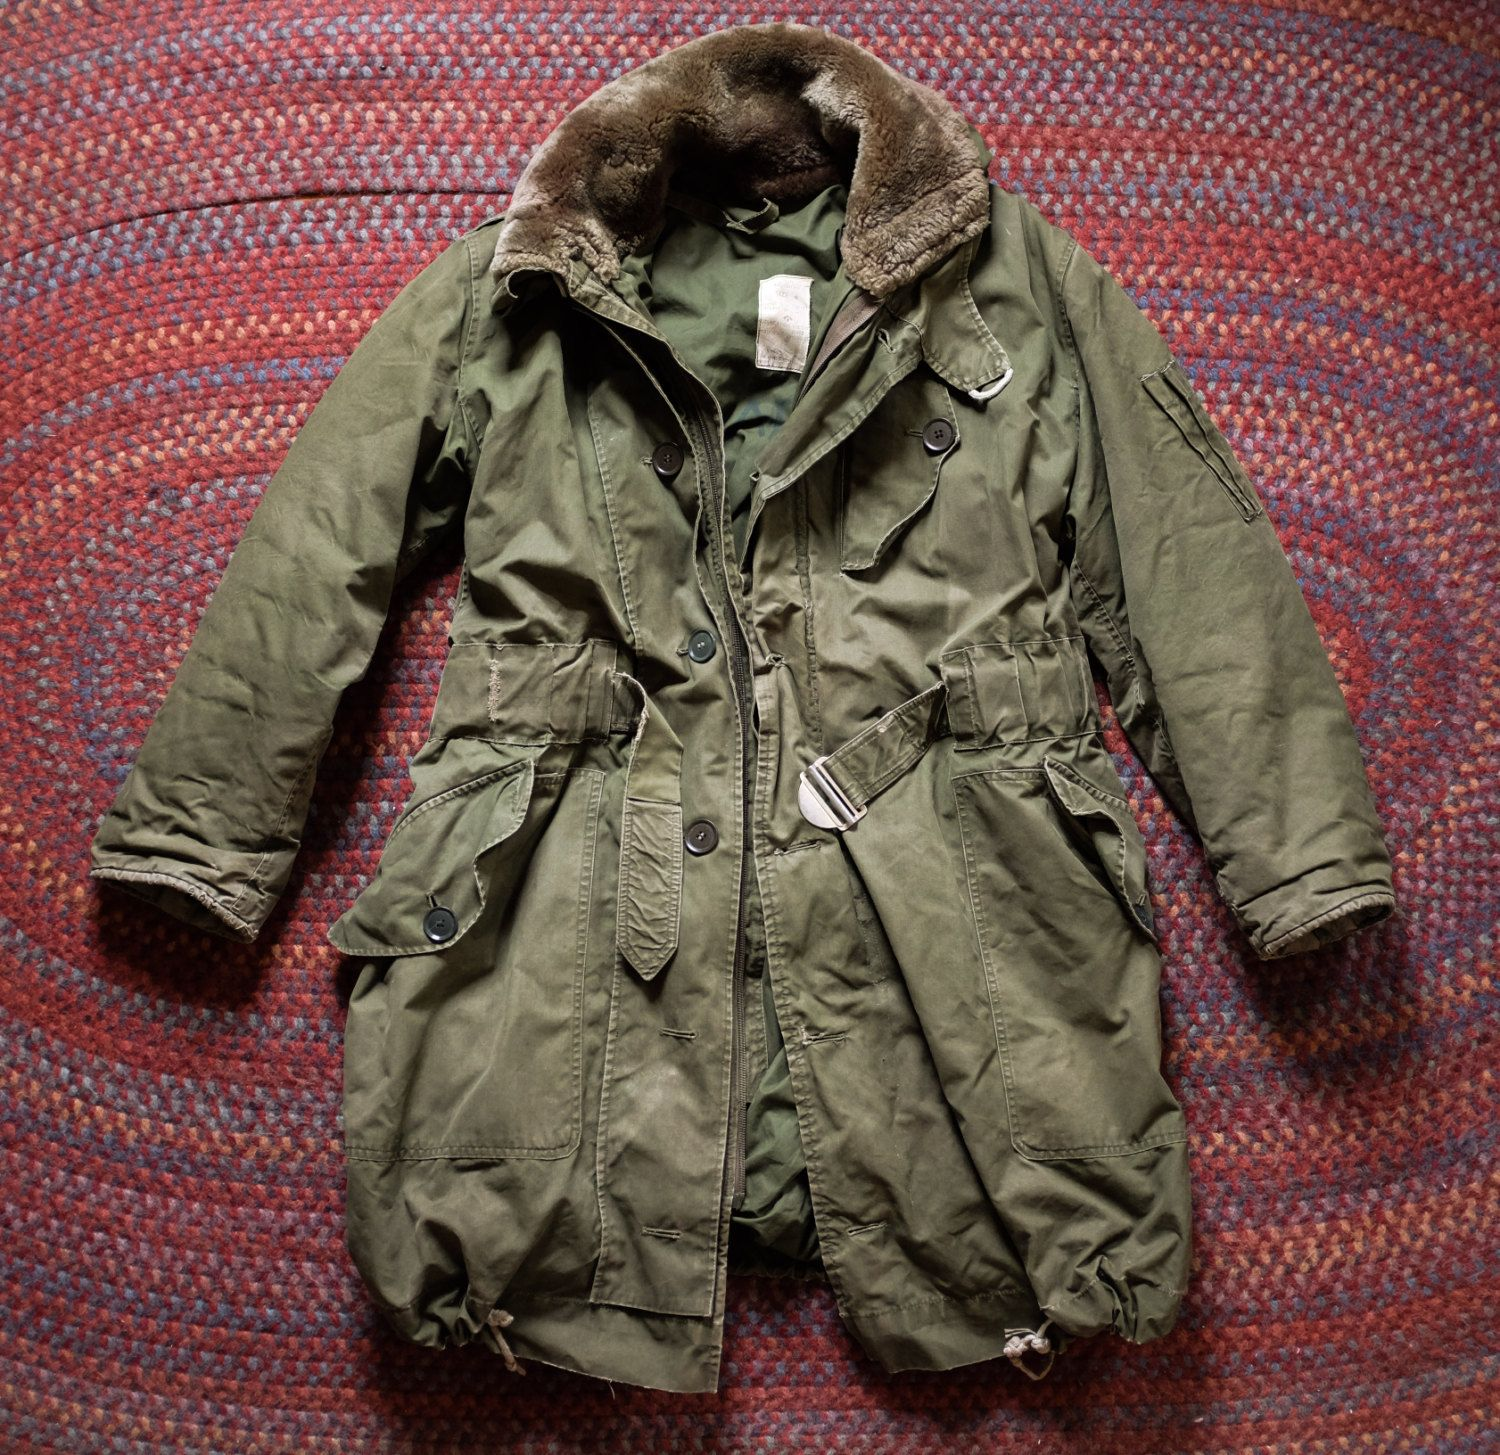 ffa9c997fc19 1950 s RAF Ventile Extreme Cold Weather Survival Parka Flight Jacket WW2  WWII…